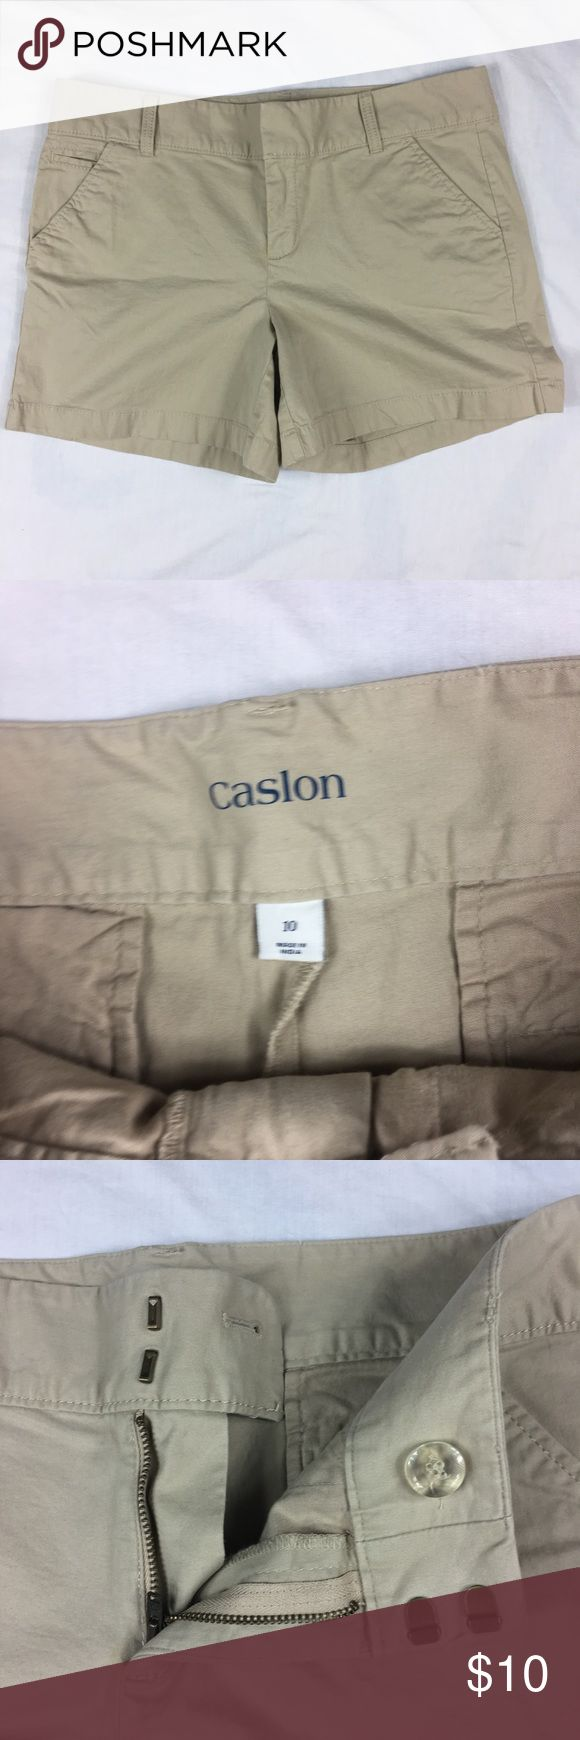 Caslon beige chino cotton shorts Caslon beige chino cotton shorts   Women's Size: 10   98% cotton, 2% spandex   Approx measurement: waist – 35 inches; inseam – 5 inches; rise – 9 ½ inches   Machine washable   Gently used  – see pictures Caslon Shorts